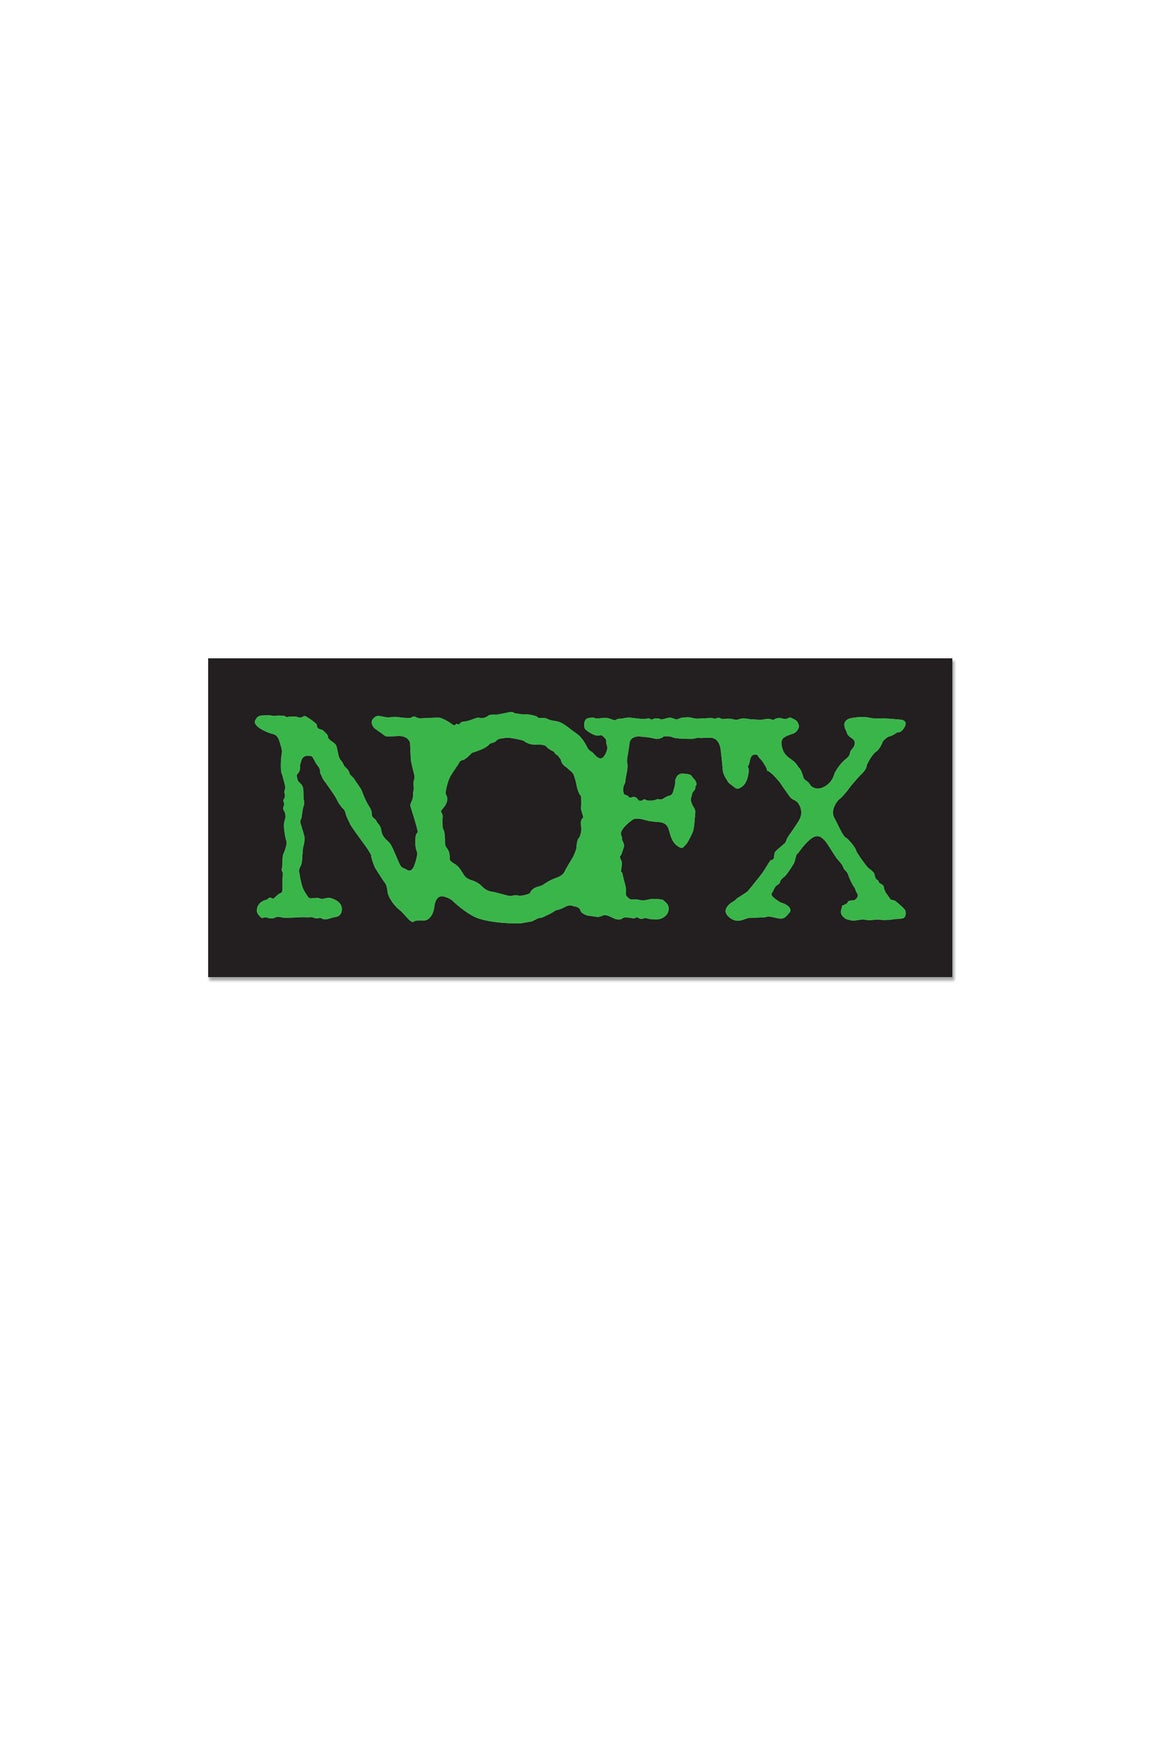 NOFX Logo Sticker